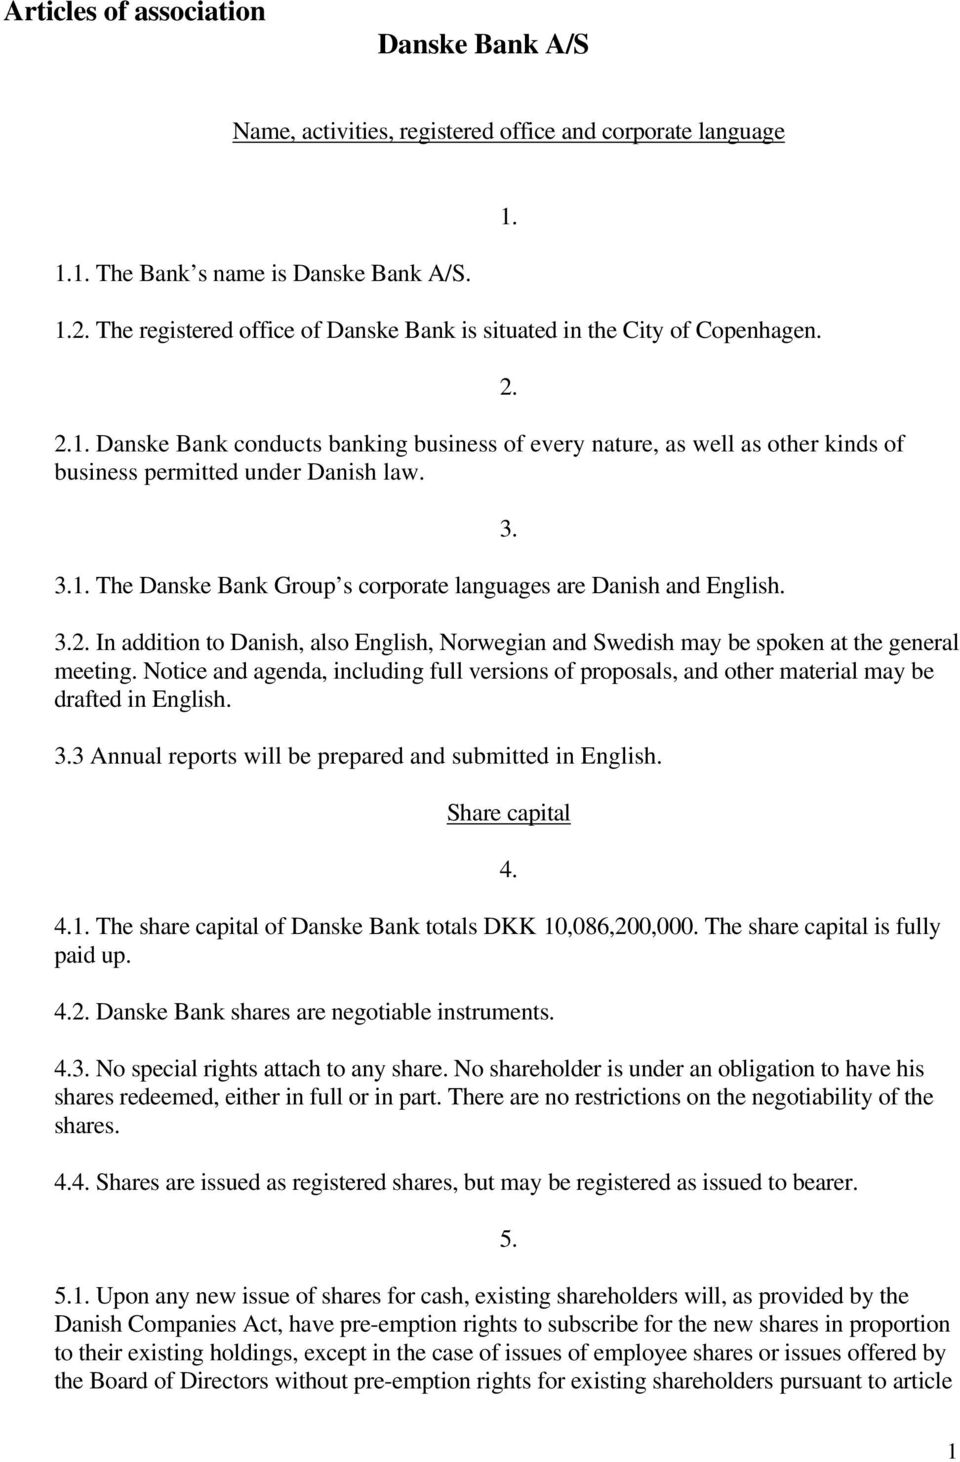 3.1. The Danske Bank Group s corporate languages are Danish and English. 1. 2. 3. 3.2. In addition to Danish, also English, Norwegian and Swedish may be spoken at the general meeting.